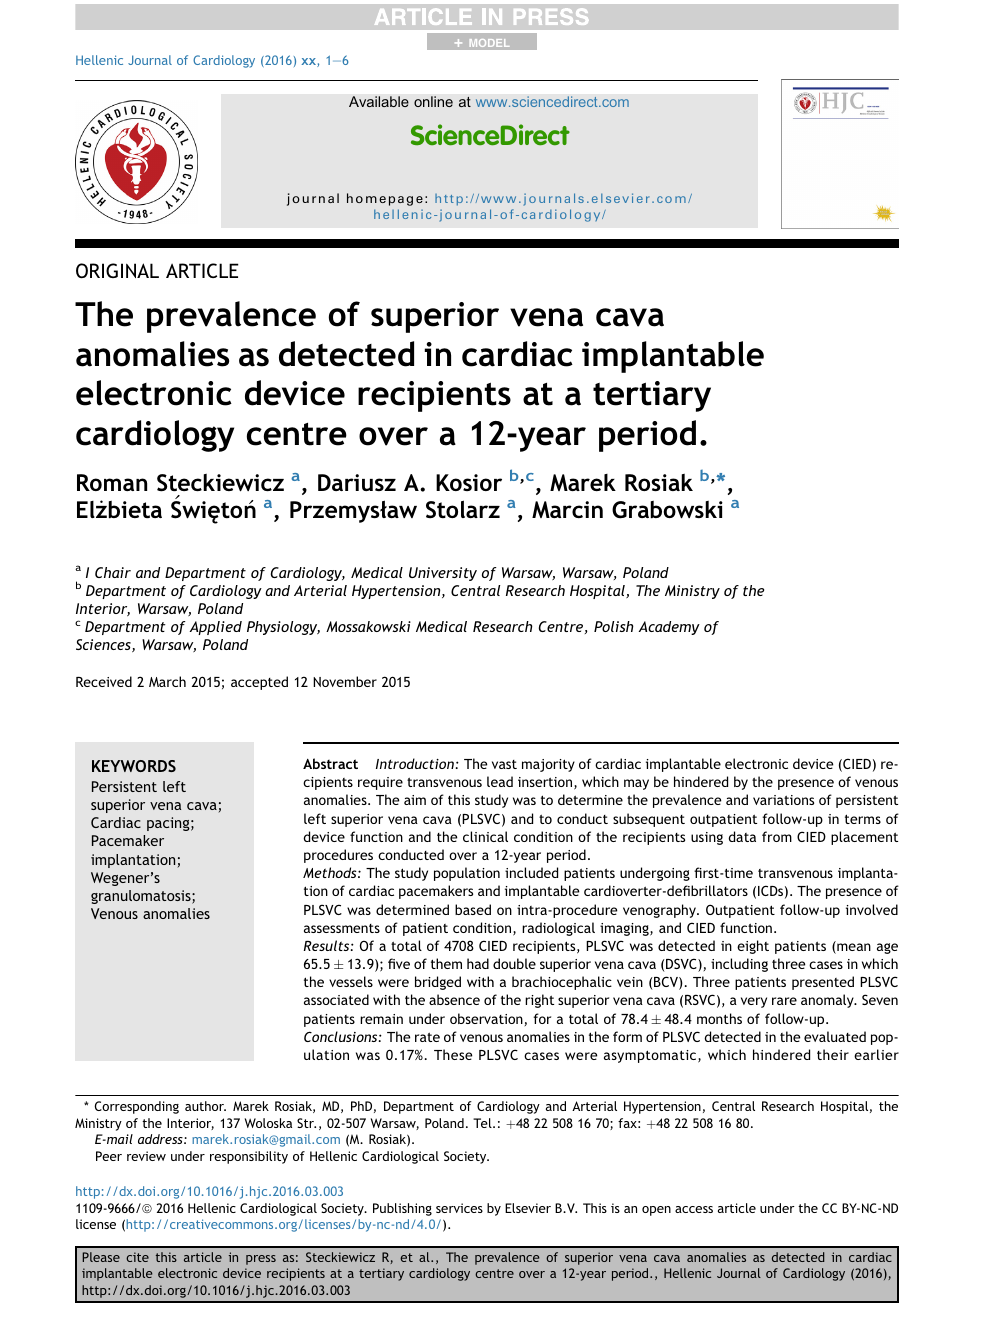 The prevalence of superior vena cava anomalies as detected